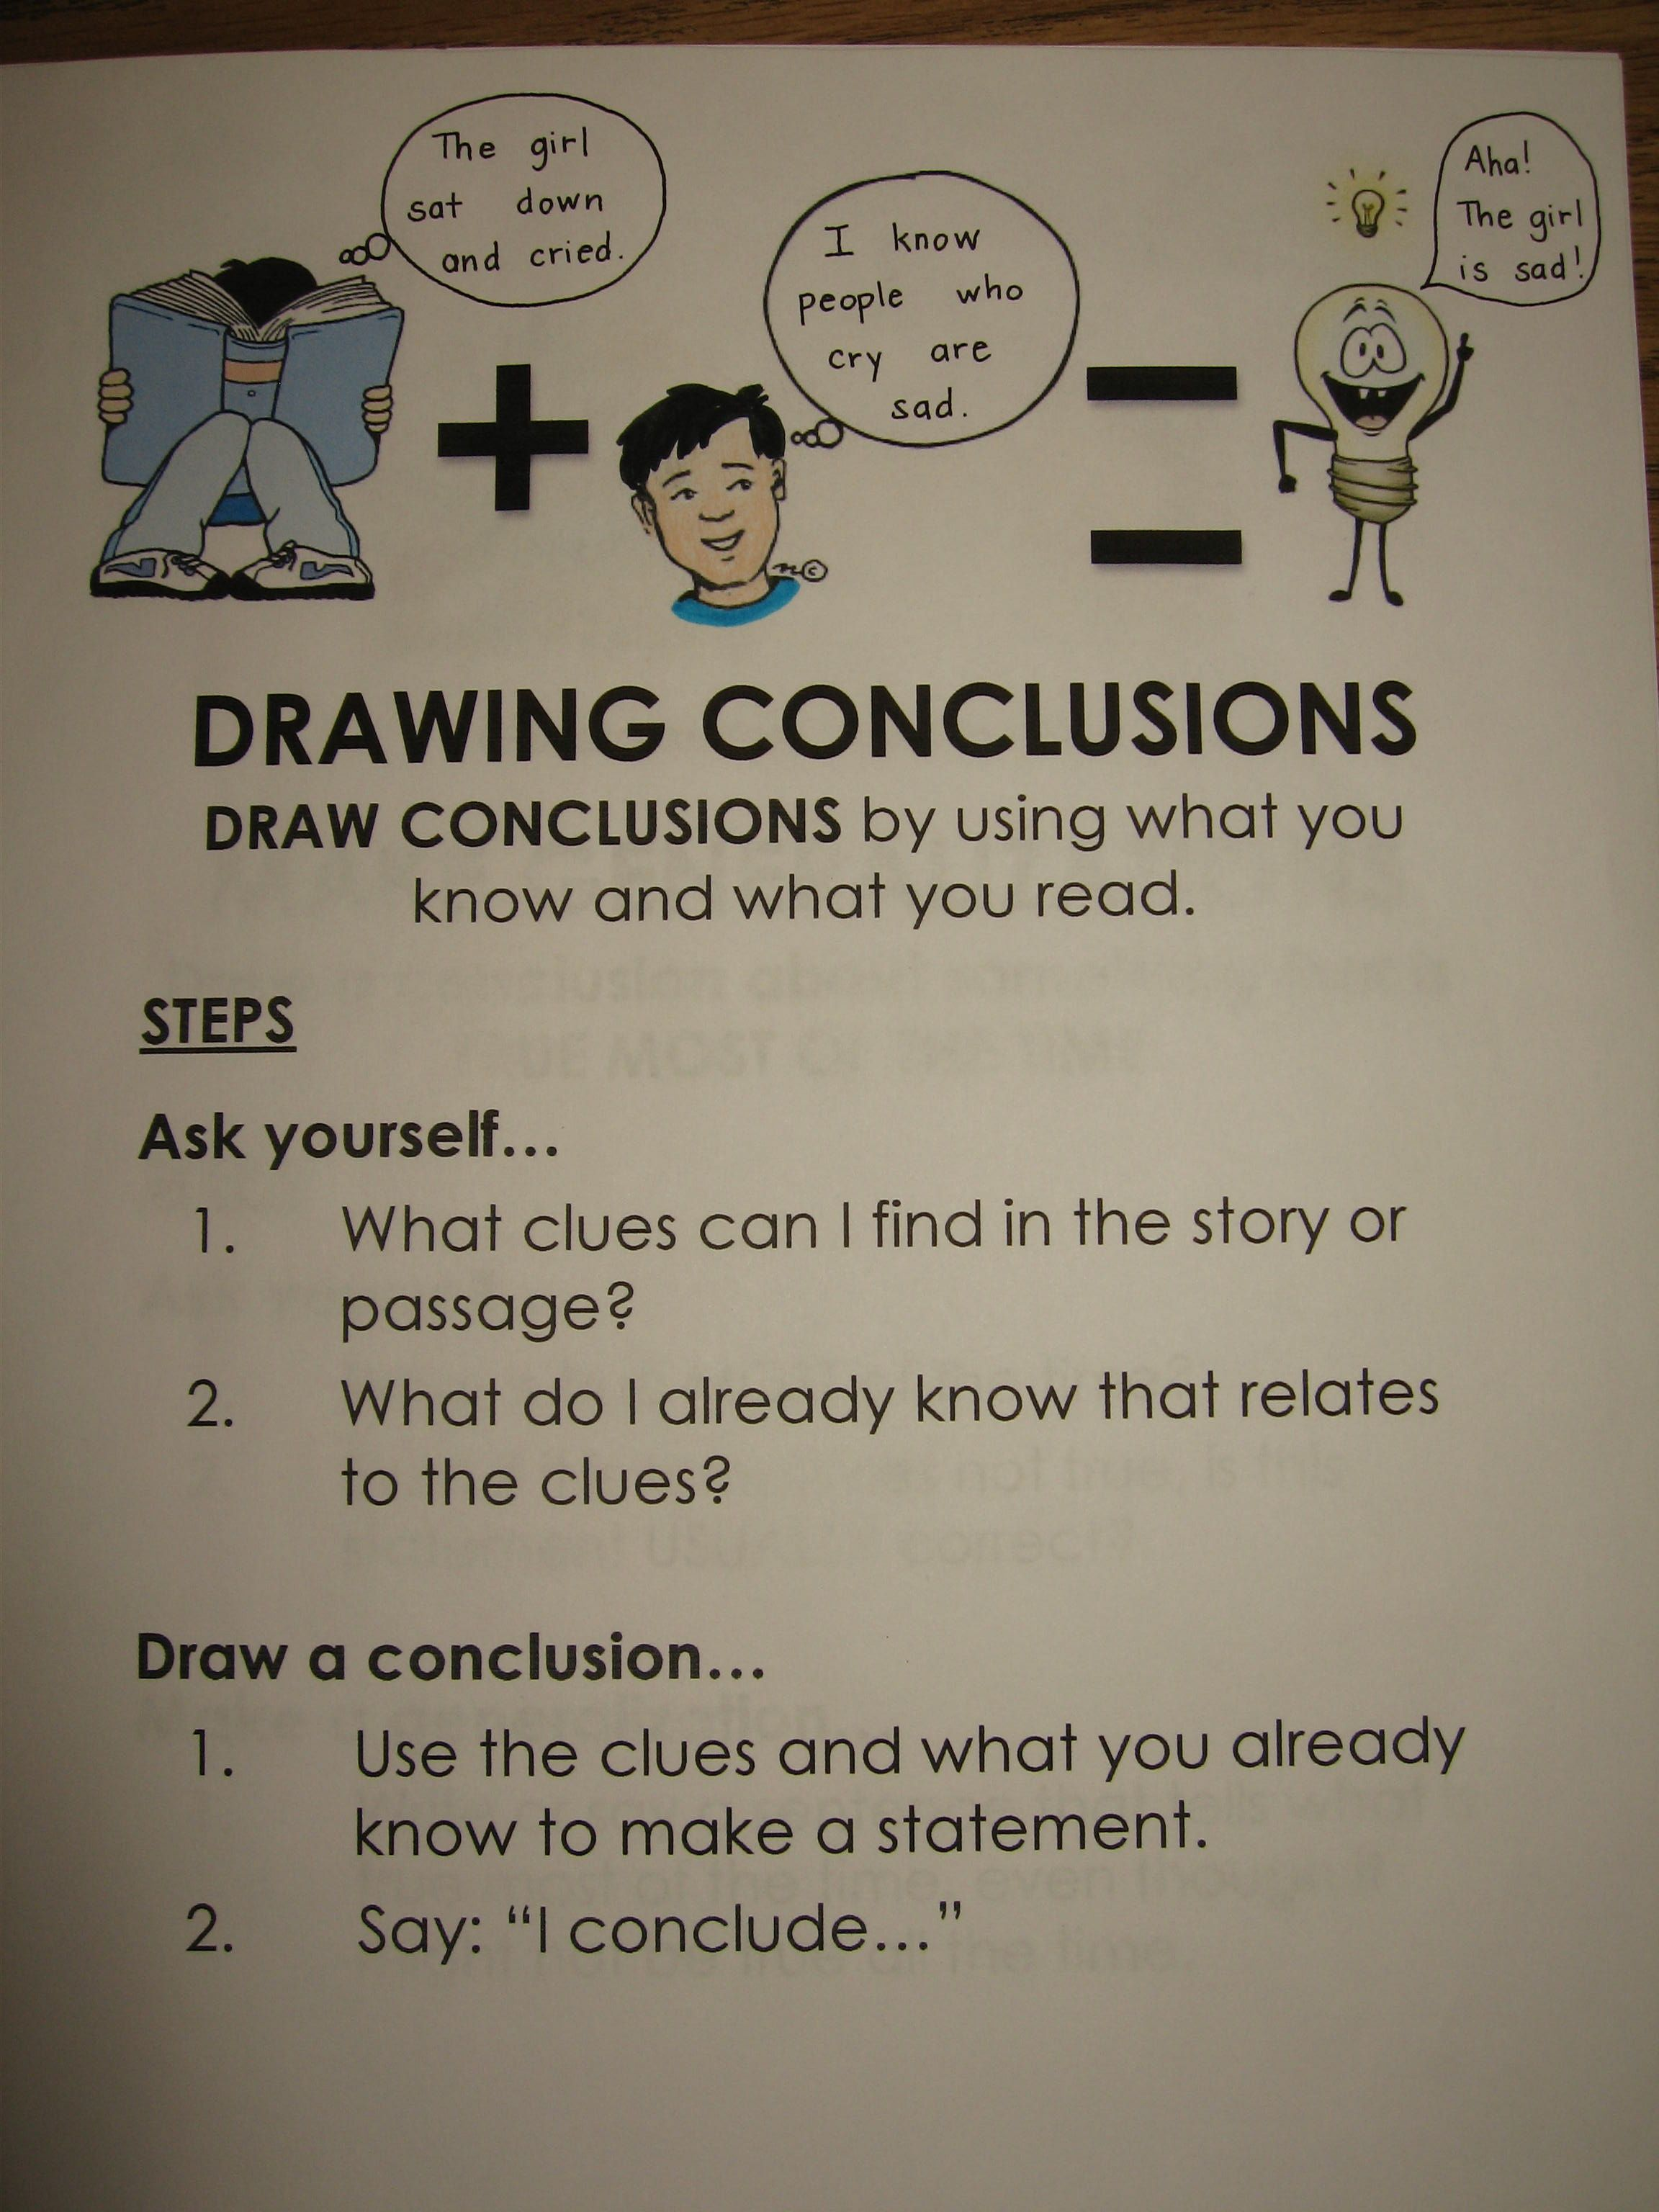 Drawing Conclusions Margaret Cho Hoang